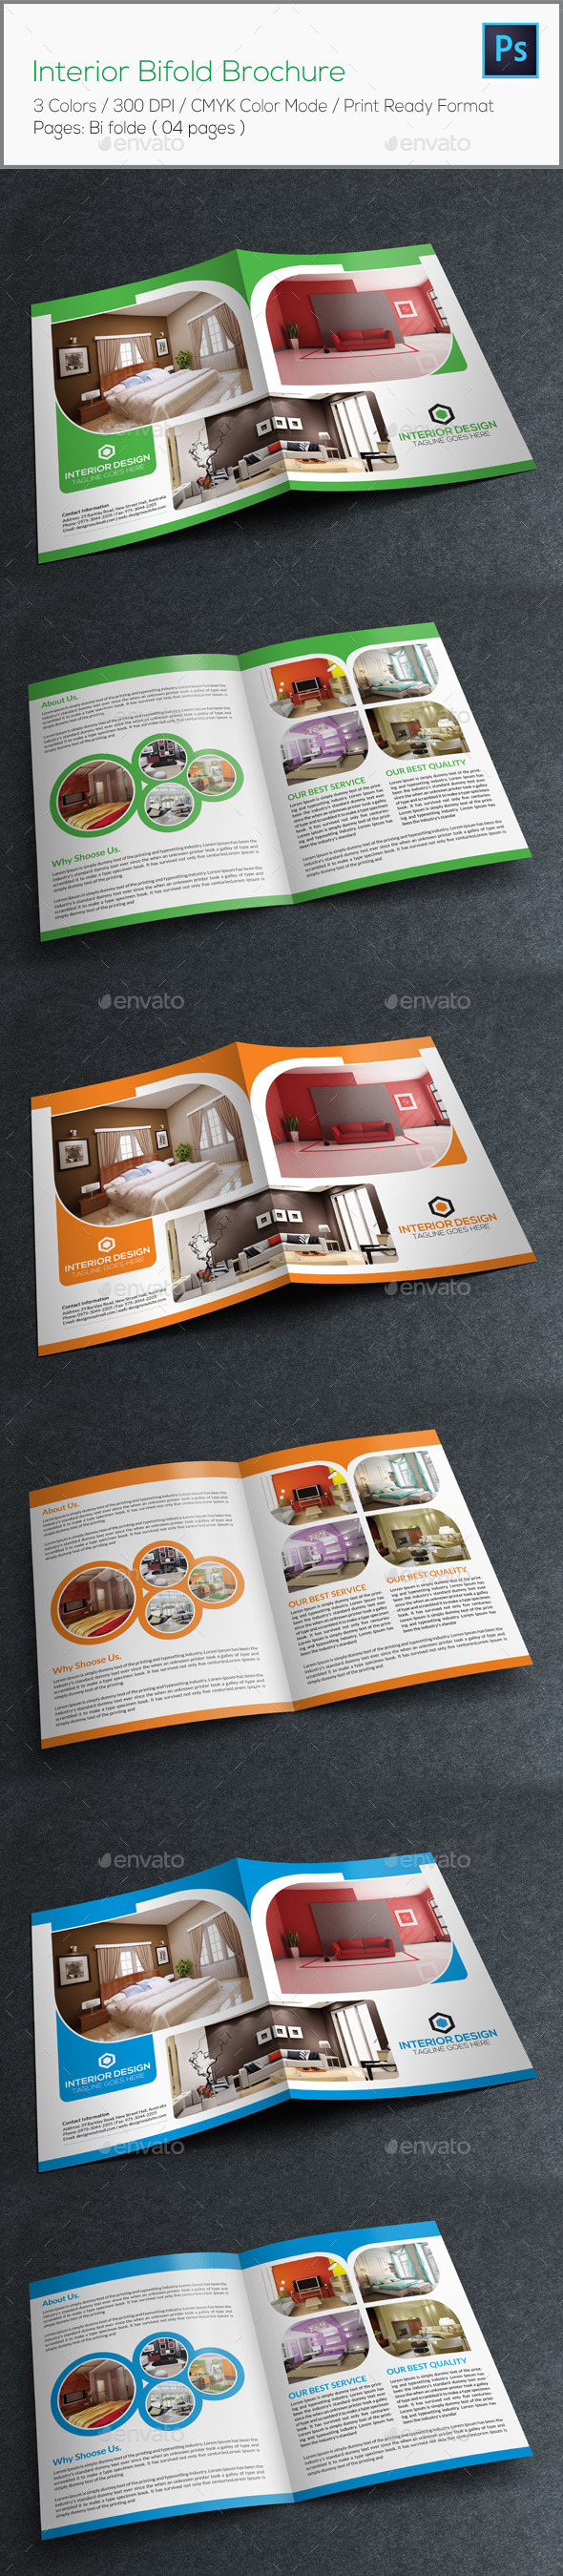 GraphicRiver Interior Bifold Brochure 8823653